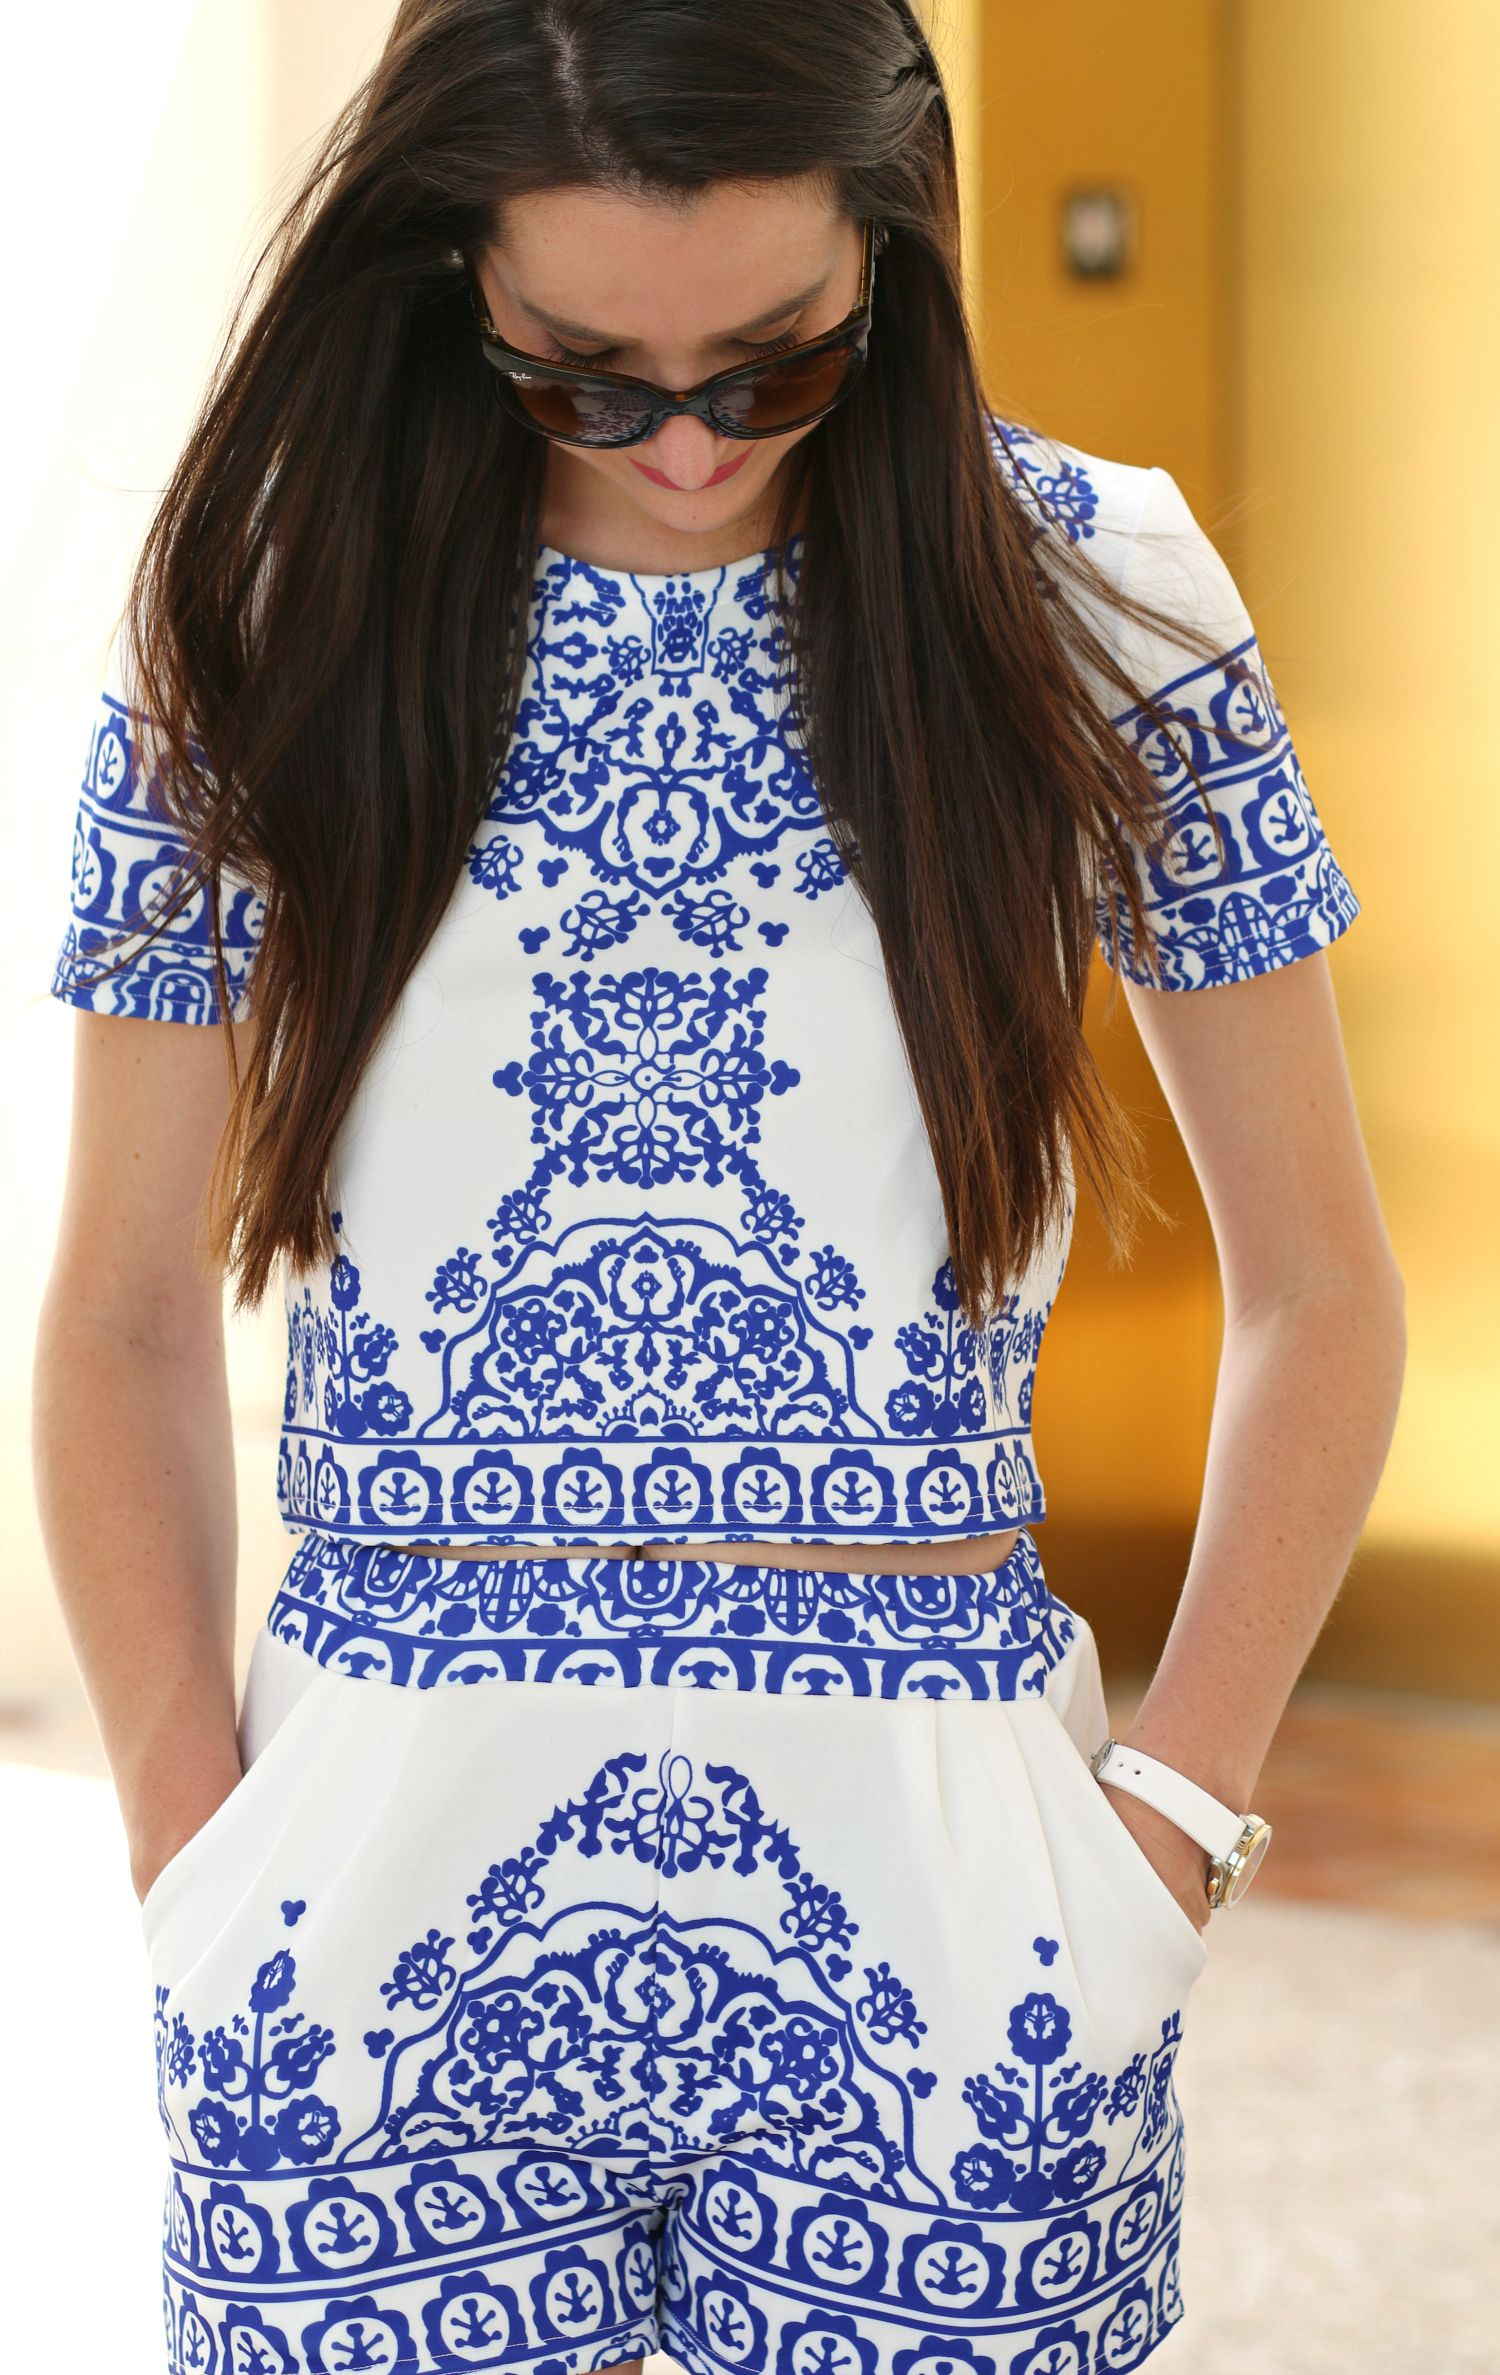 e363acf53d9315 SheIn Matching Crop Top and Shorts Set in Pretty Blue Porcelain Print